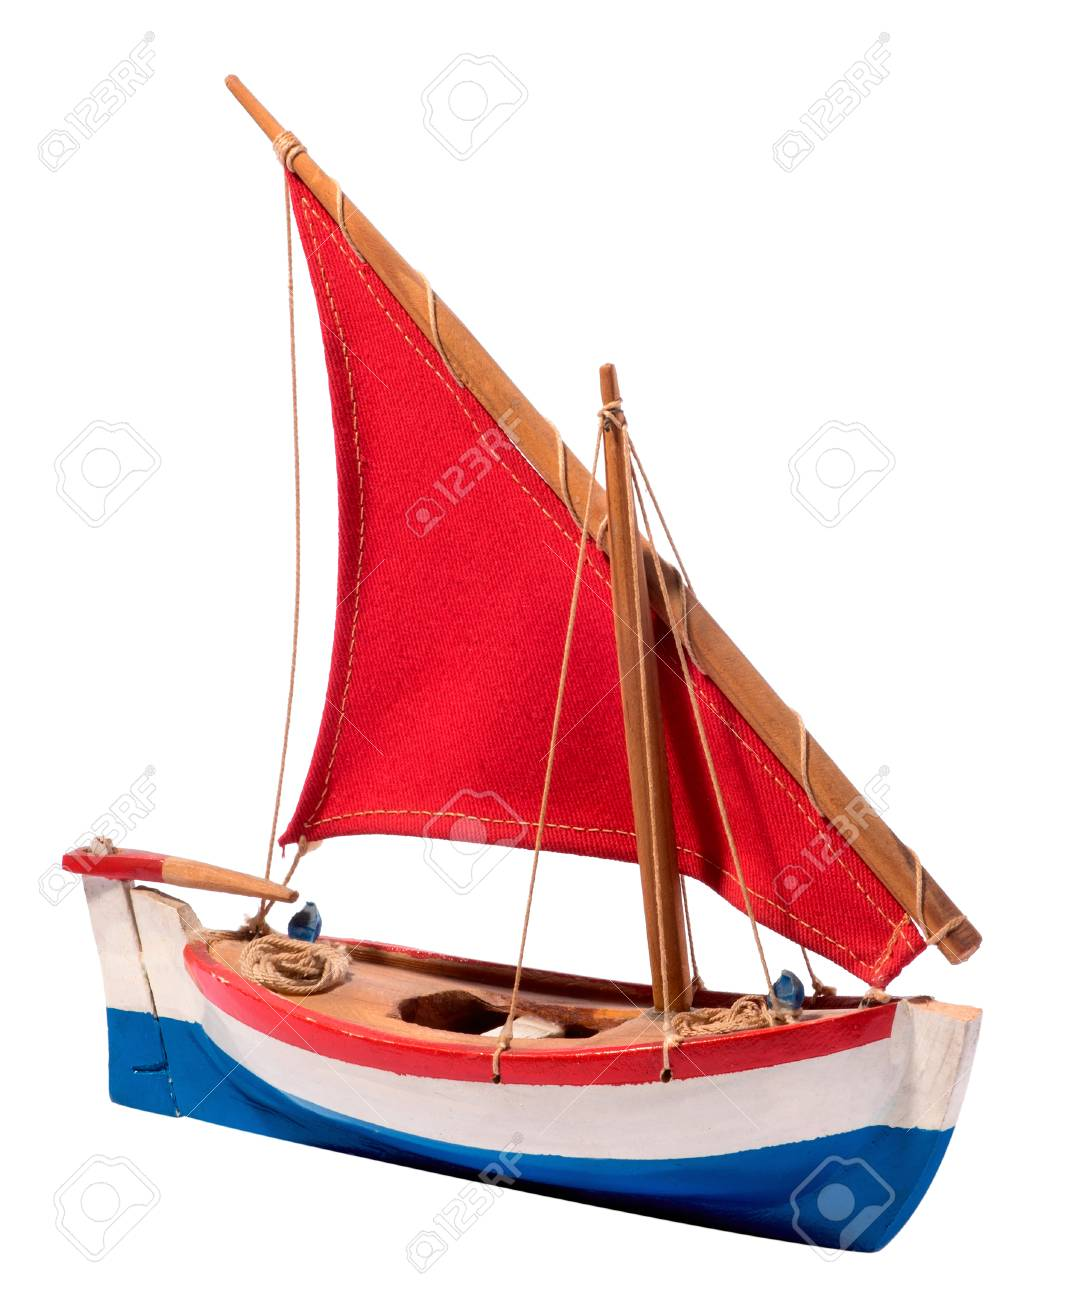 Colorful simple wooden handcrafted sailing boat with red sail